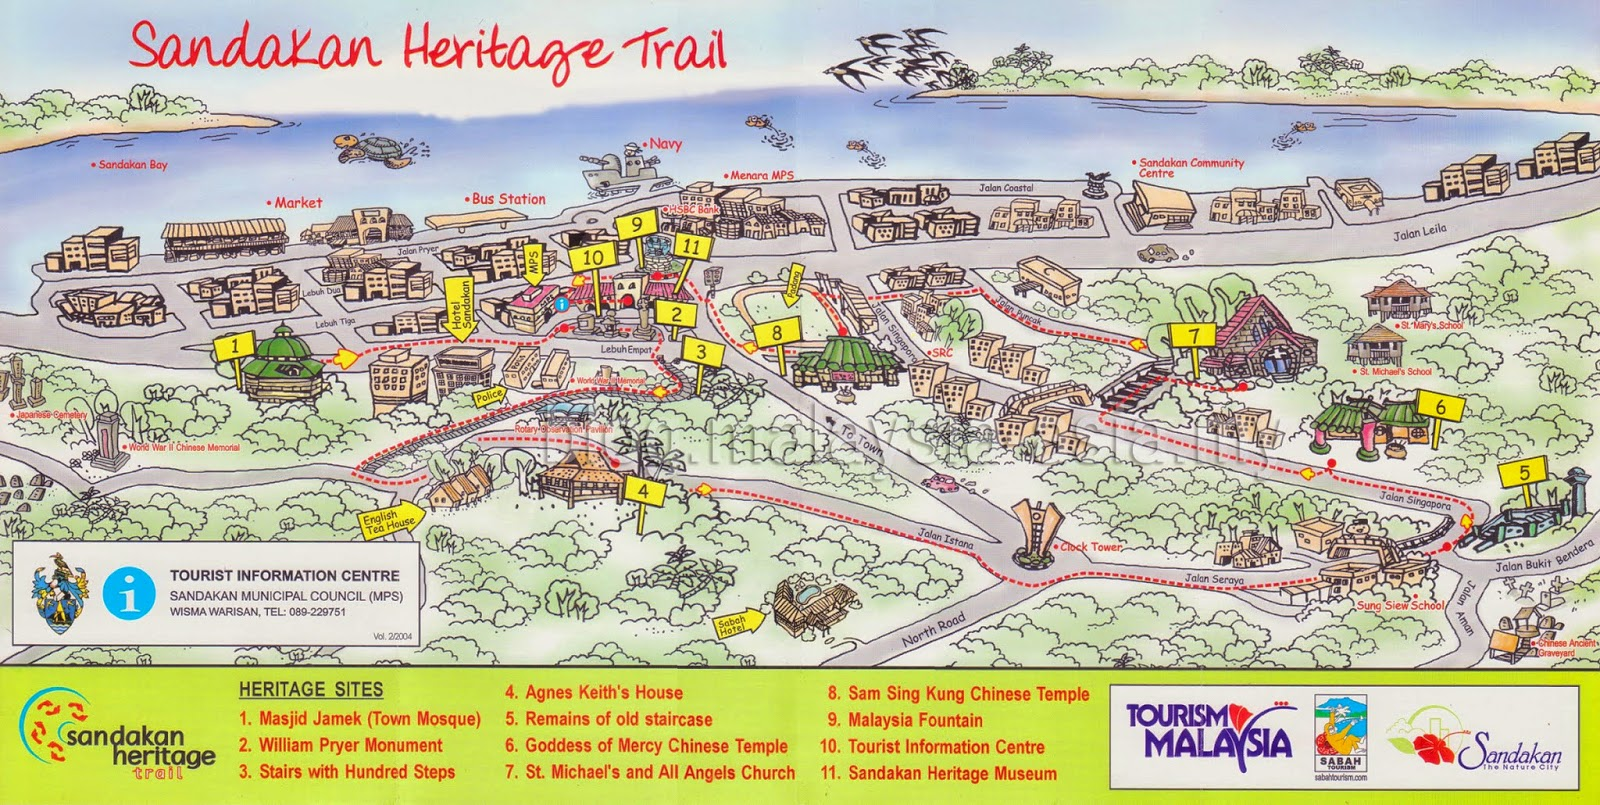 Sandakan Heritage Trail Map